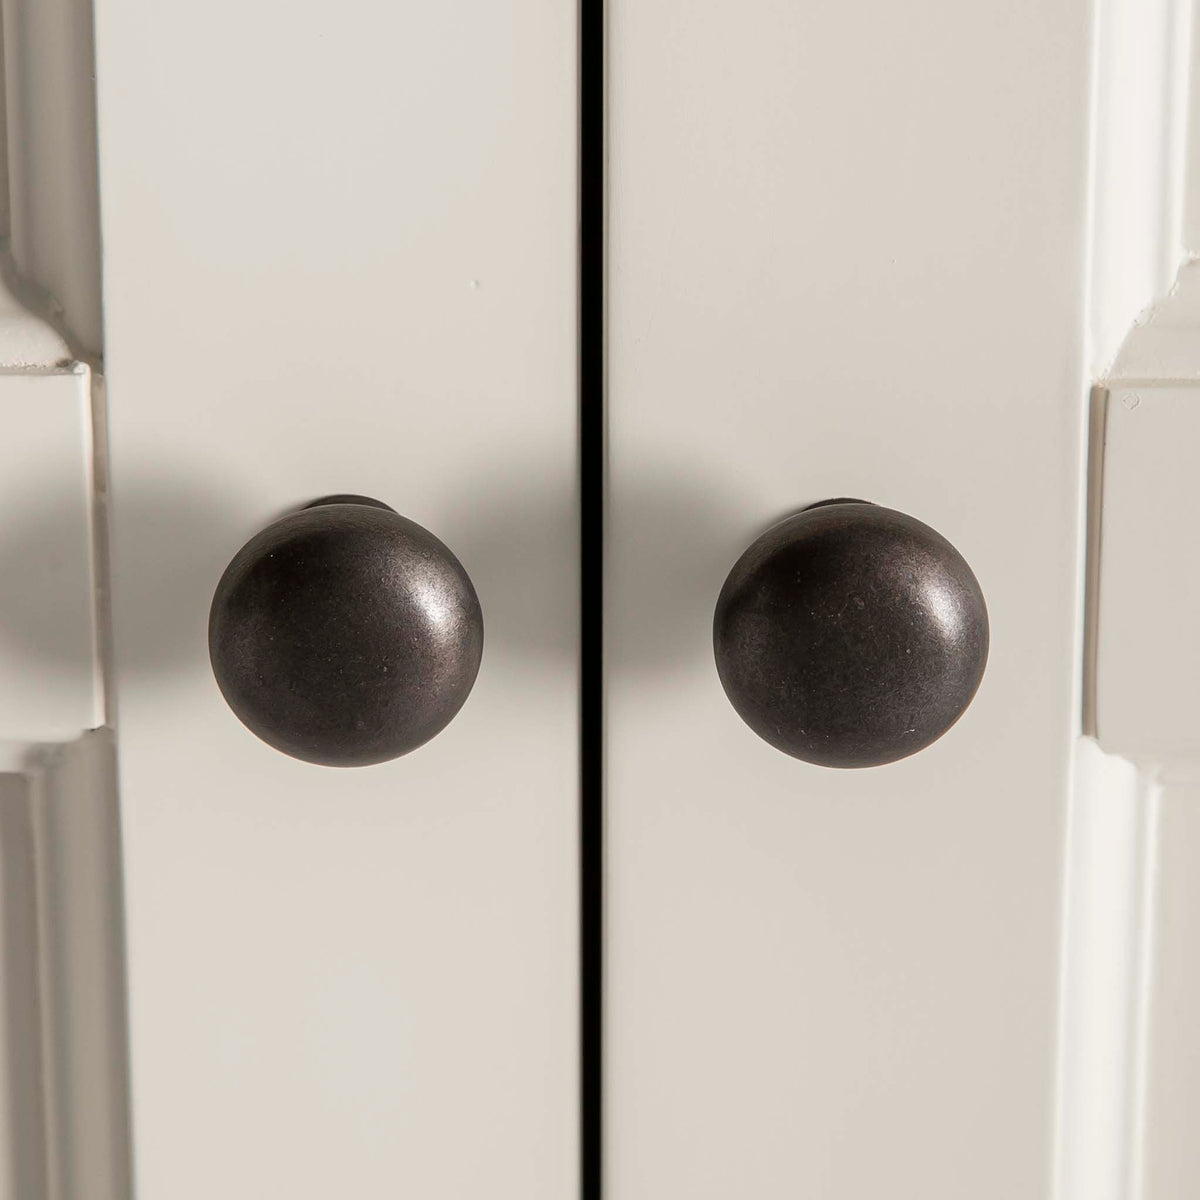 Hove Ivory Double Wardrobe with Drawers - Close up of wardrobe door handles